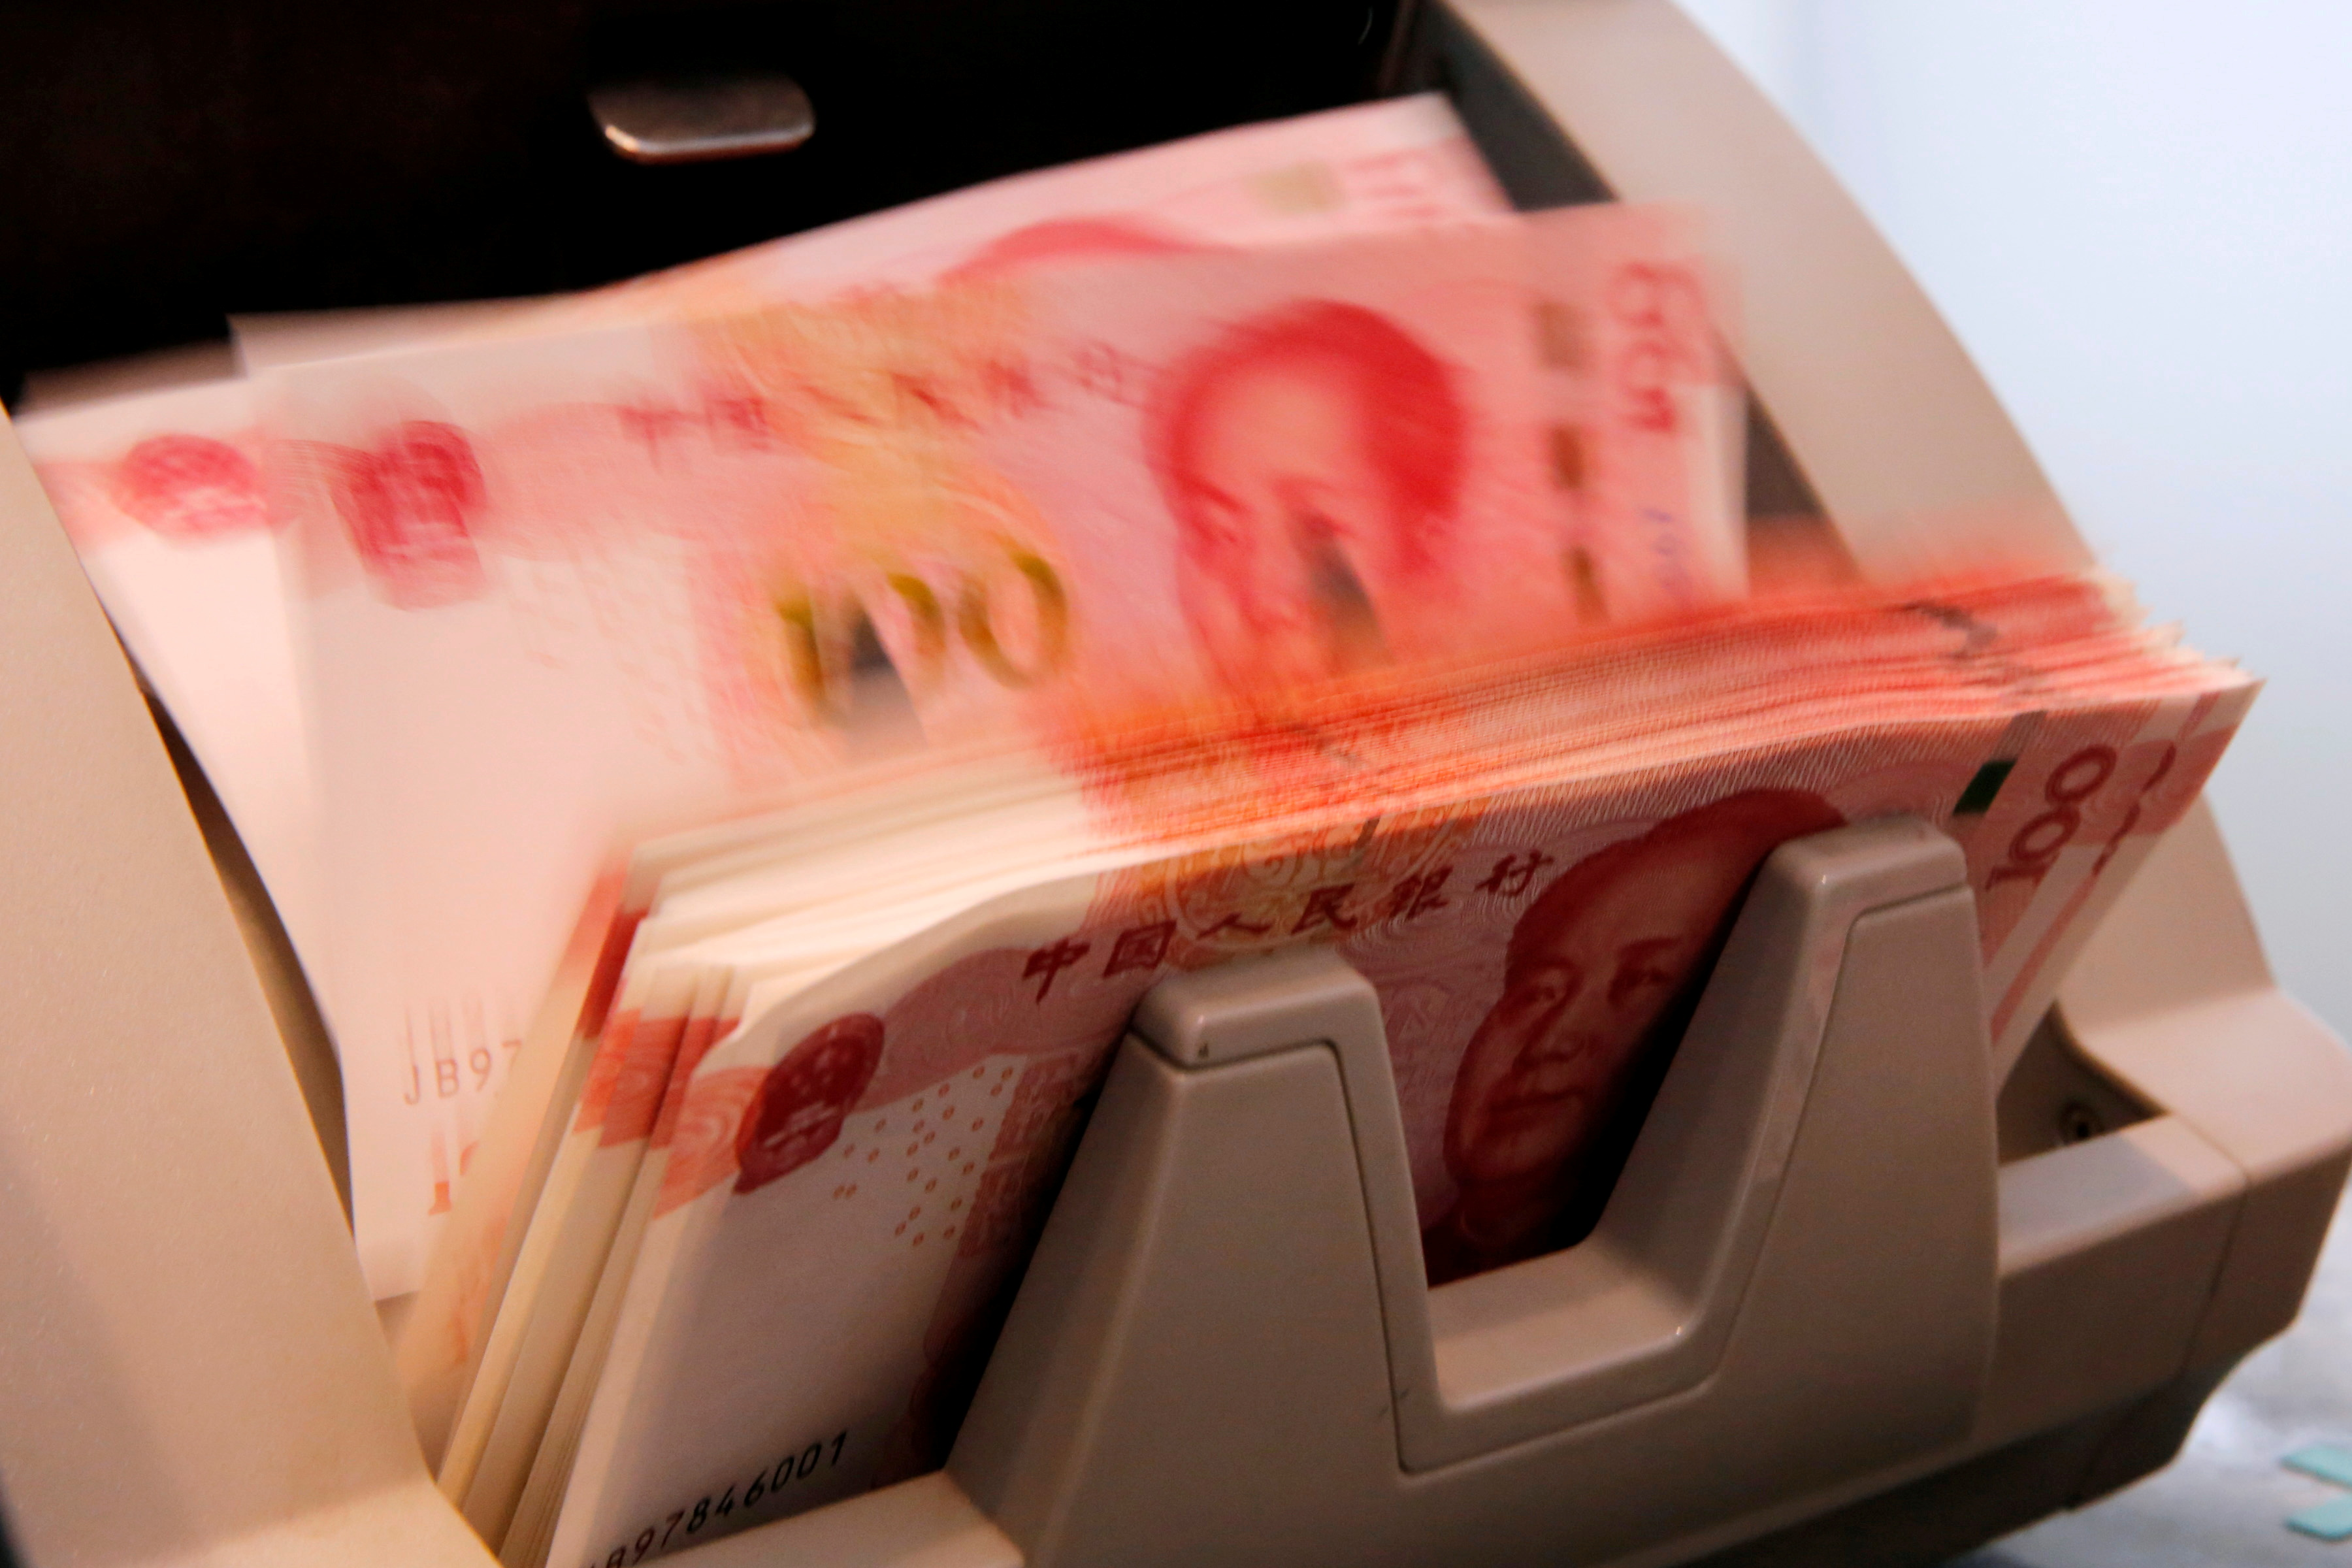 Chinese 100 yuan banknotes are seen in a counting machine while a clerk counts them at a branch of a commercial bank in Beijing, China, March 30, 2016. REUTERS/Kim Kyung-Hoon/File Photo